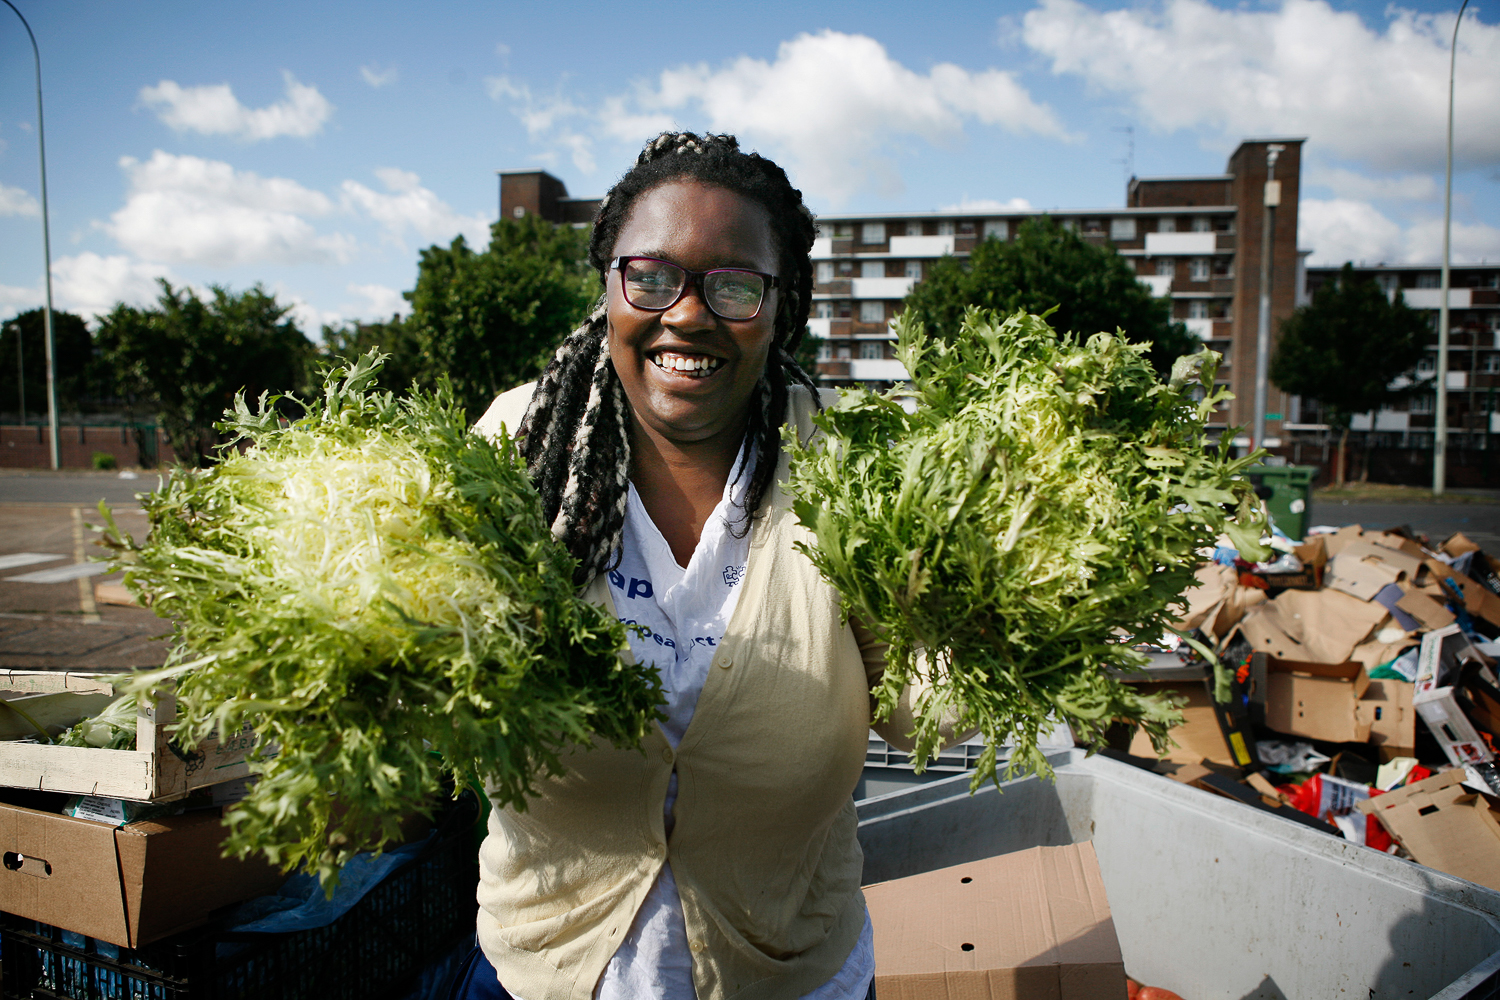 Kemi Akinola runs the Brixton People's Kitchen, and finds discarded ingredients at a fruit and vegetable market [Silvia Boarini/Al Jazeera]